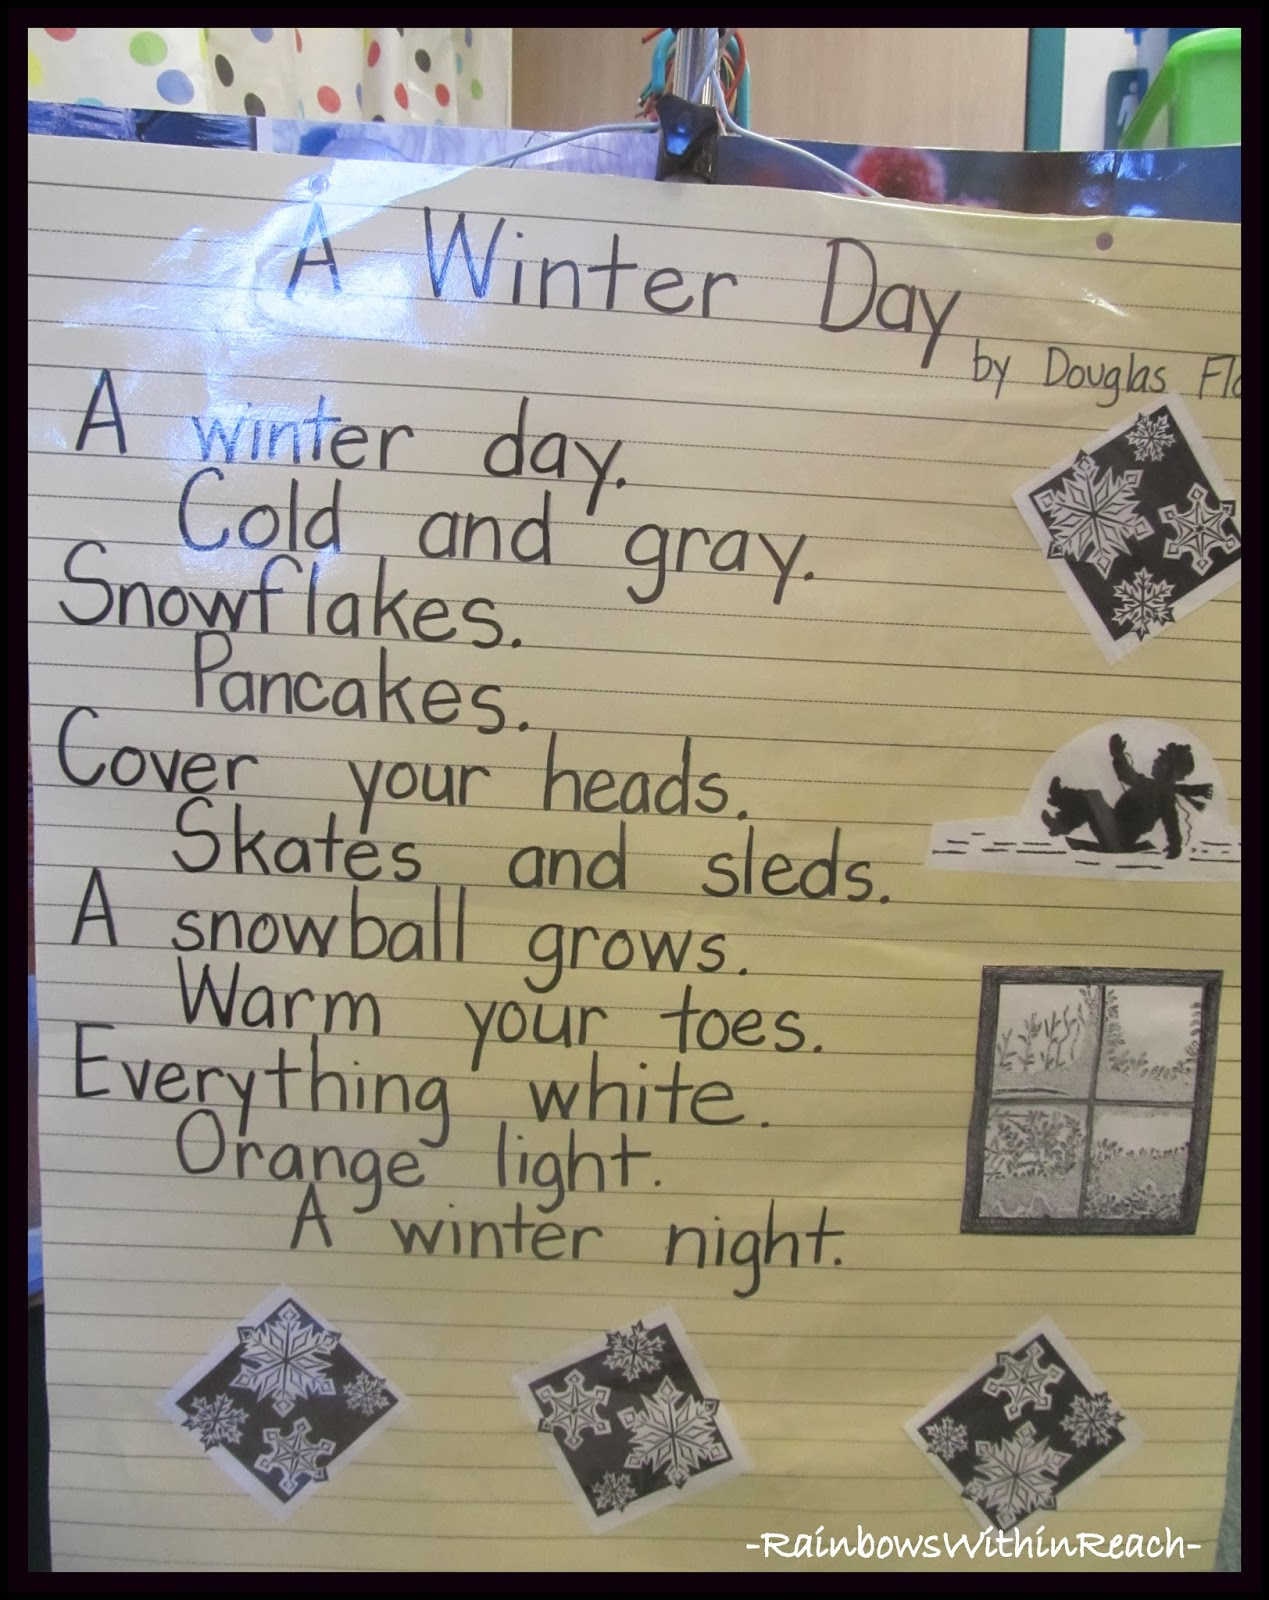 A Winter Day Poem on Anchor Chart via RainbowsWithinReach